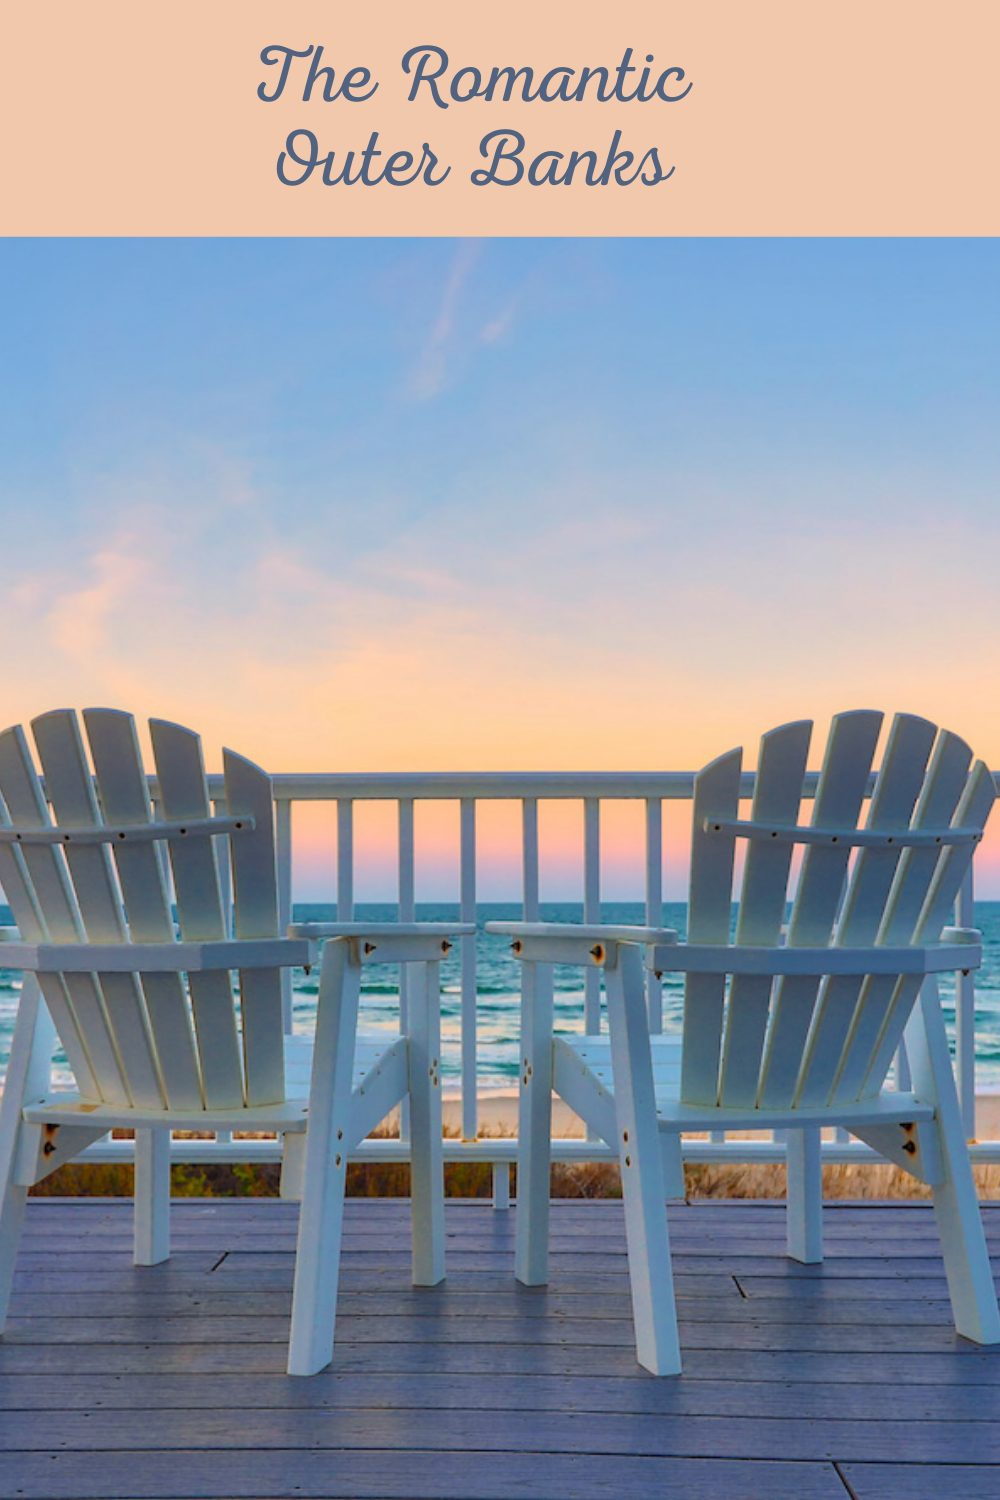 Romantic Outer Banks pin